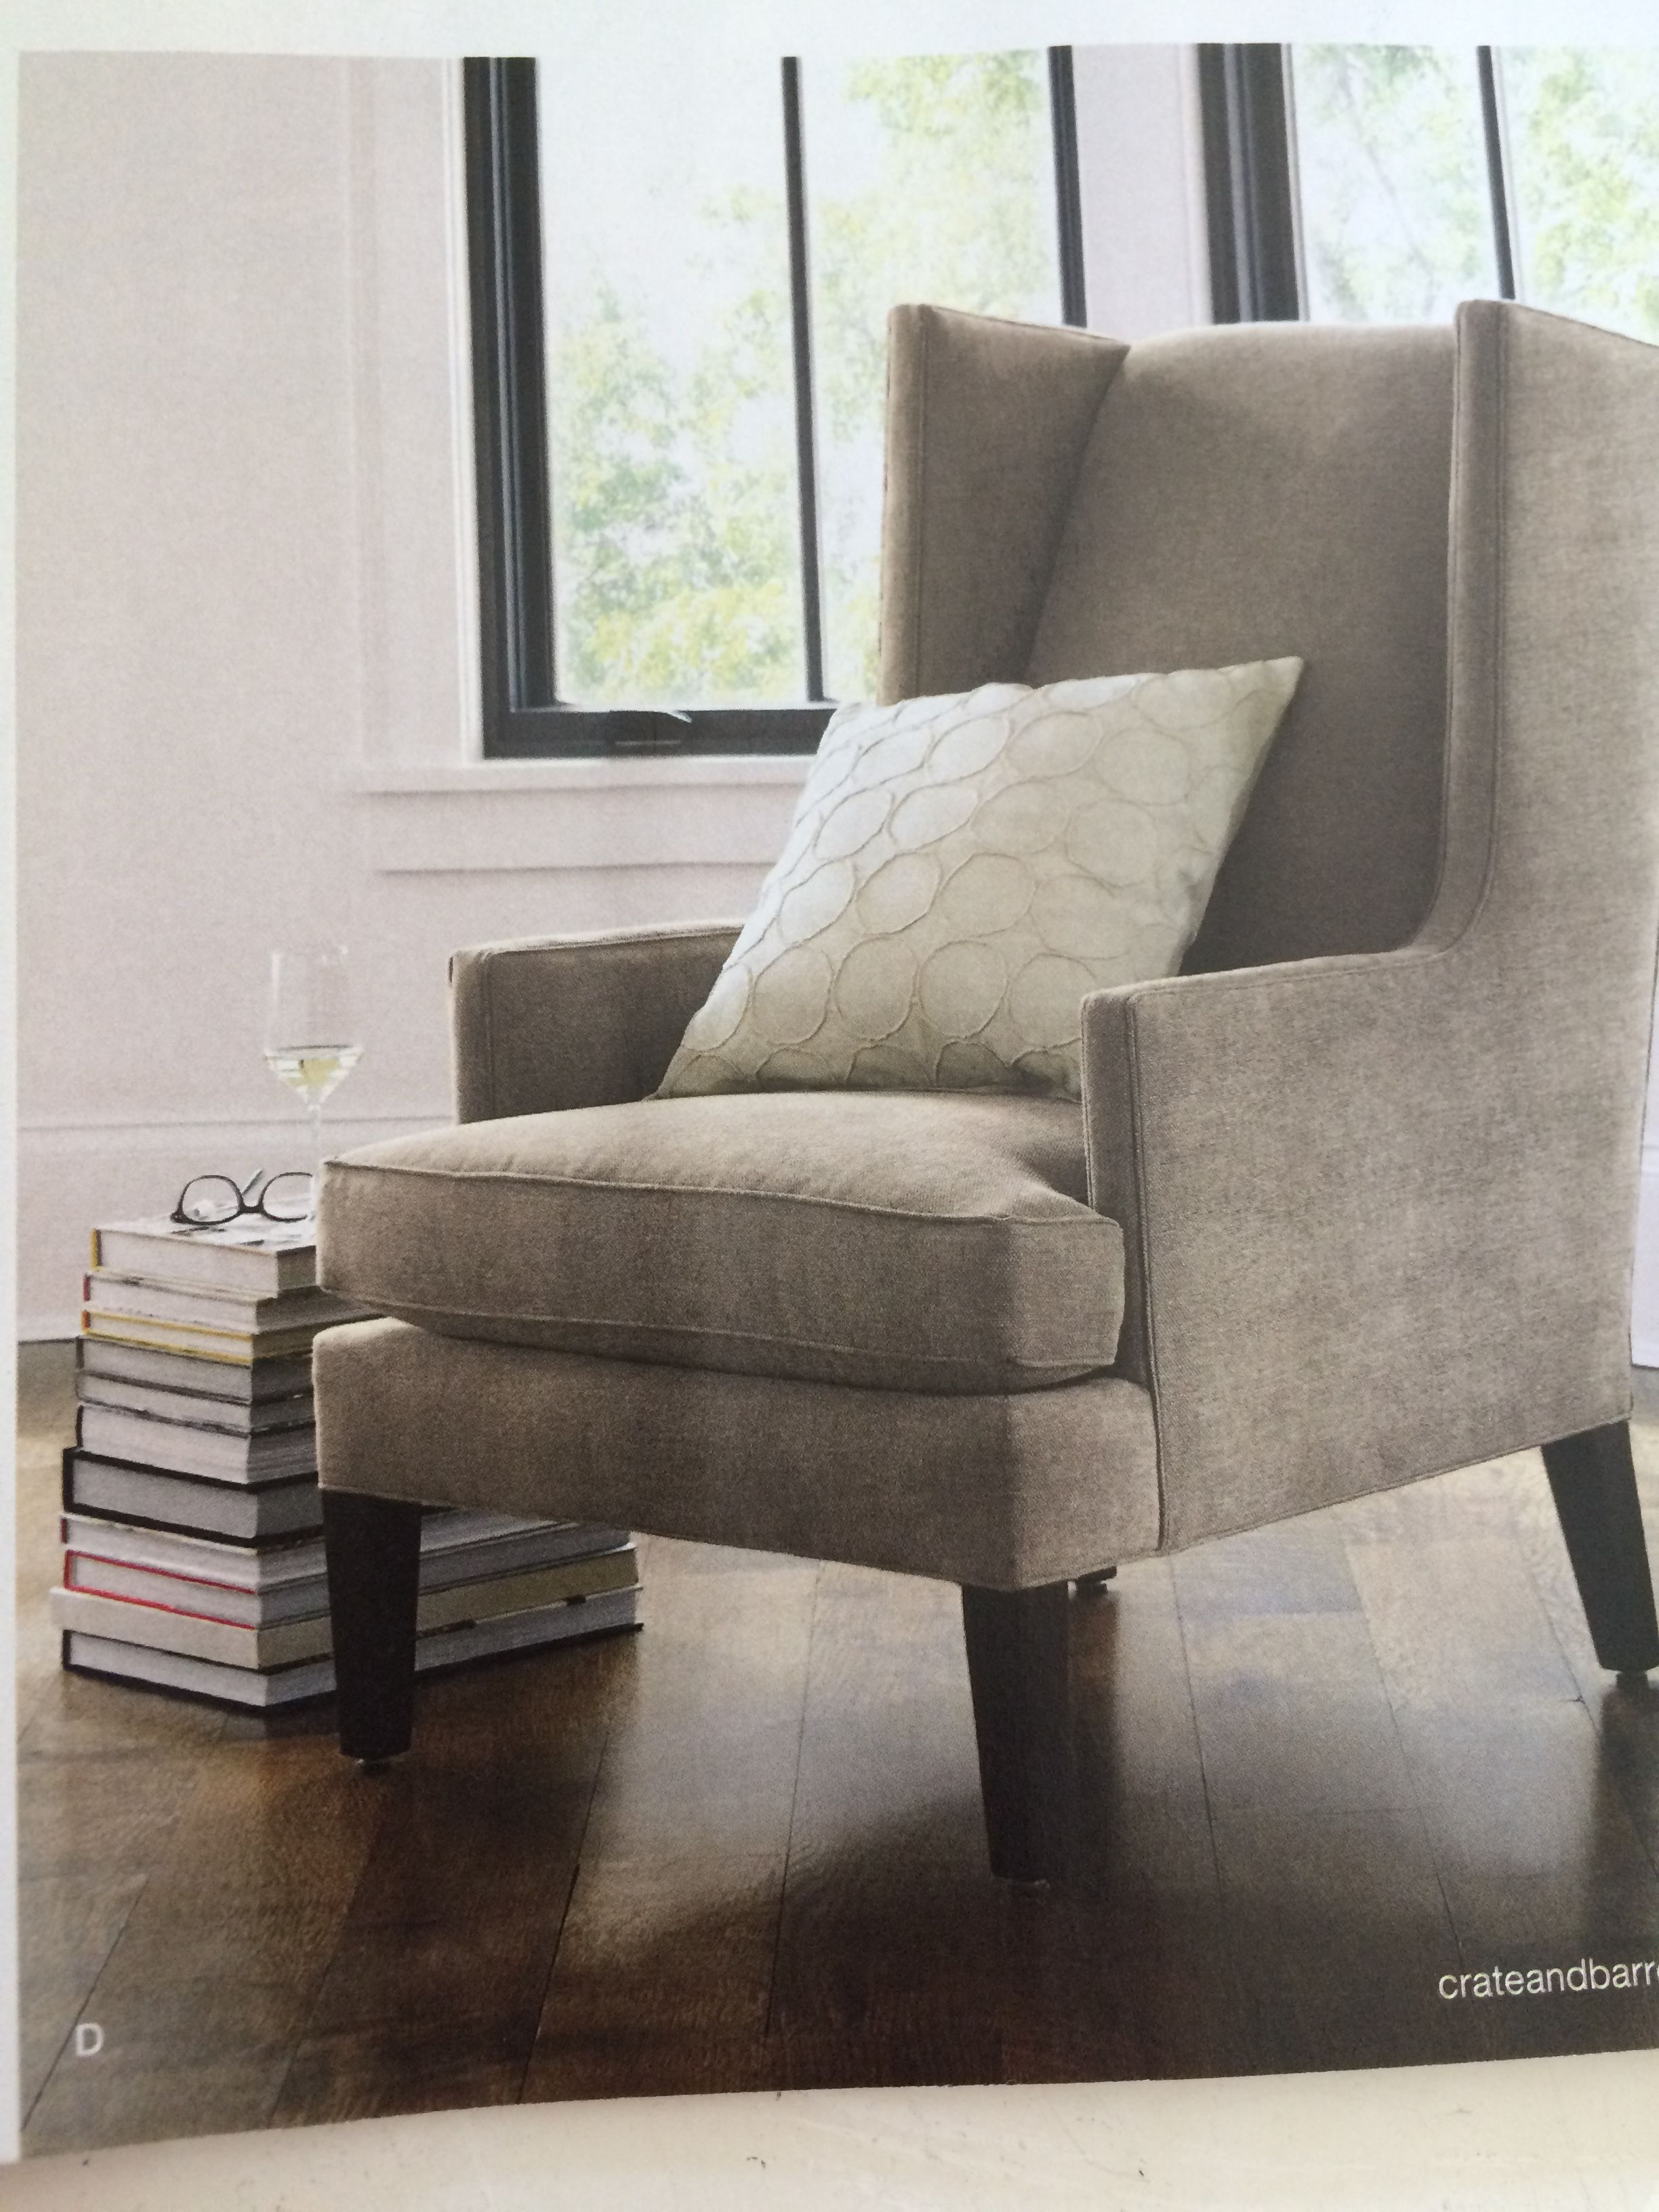 An idea for next to the grey chair instead of a low plant bench... Just get a stack of coffee table books from second- hand stores